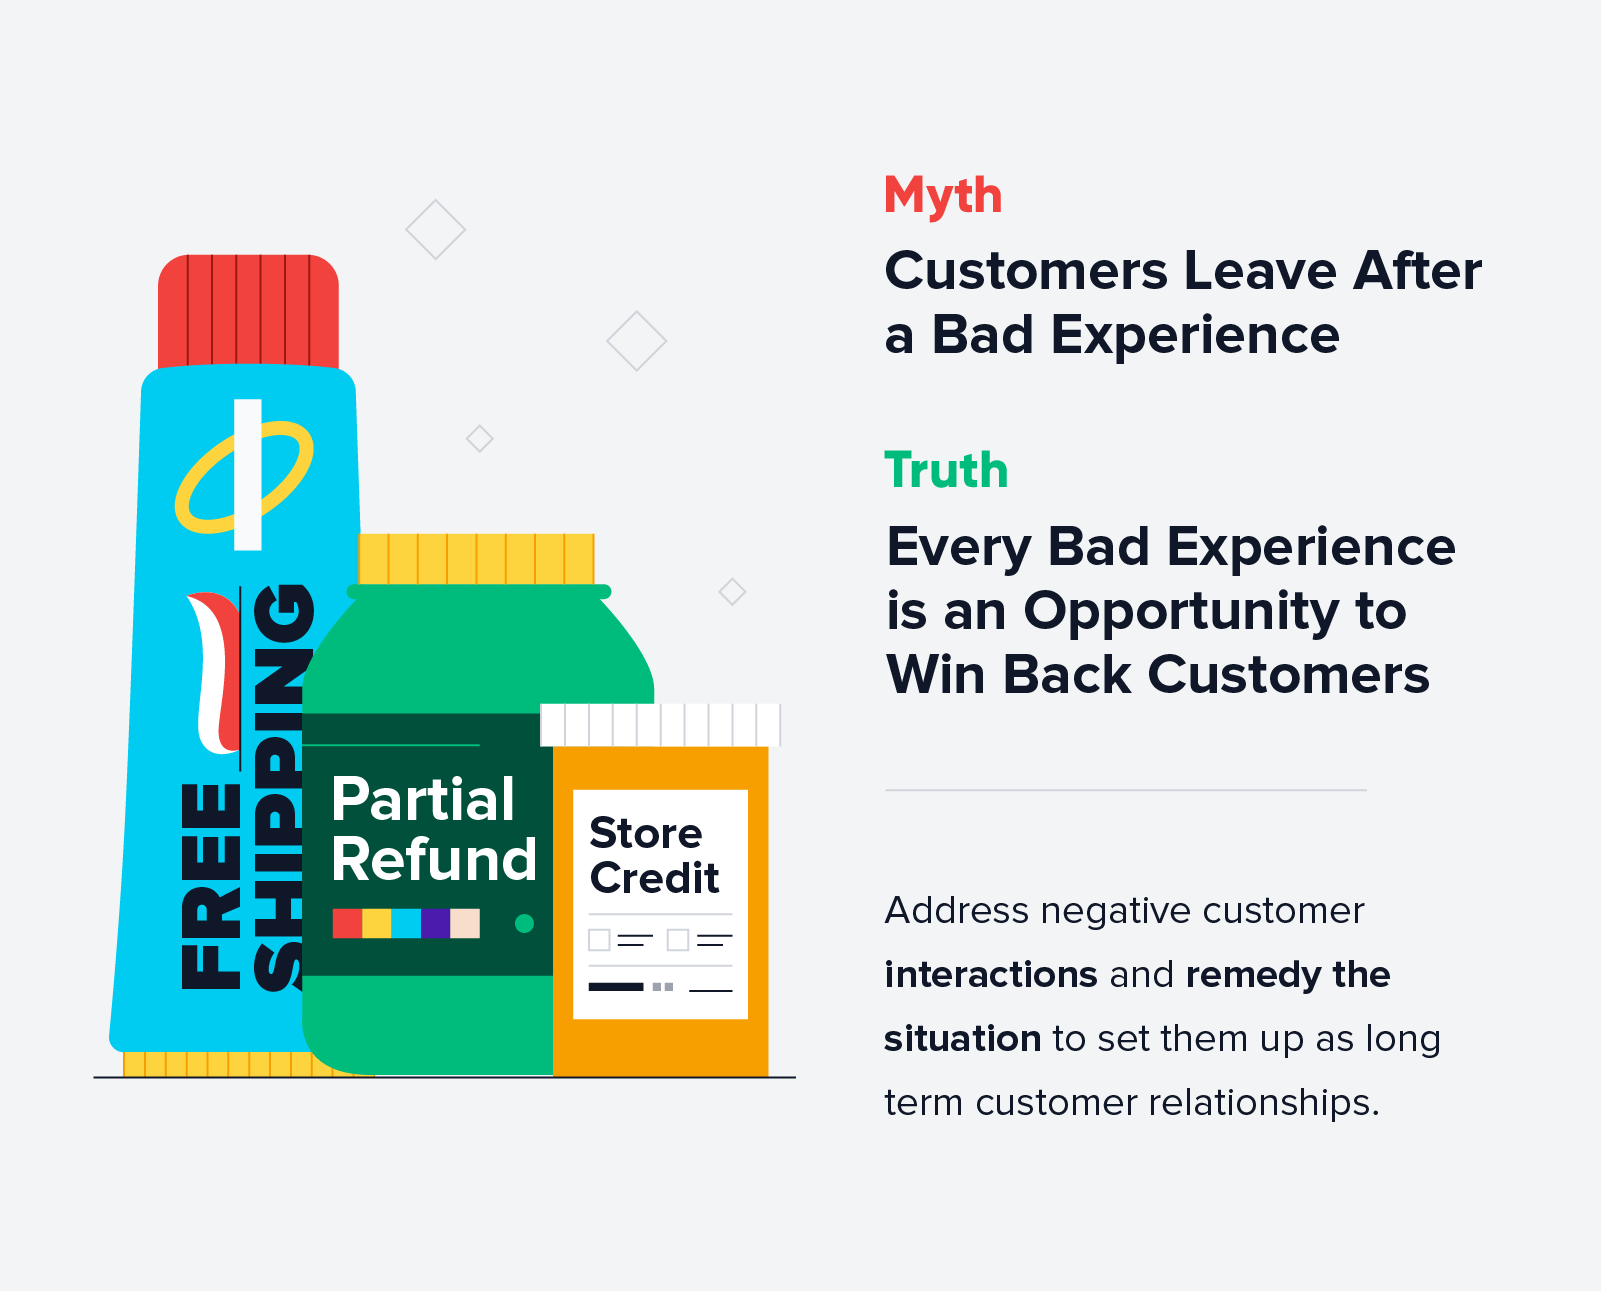 every bad experience is an opportunity to win back customers